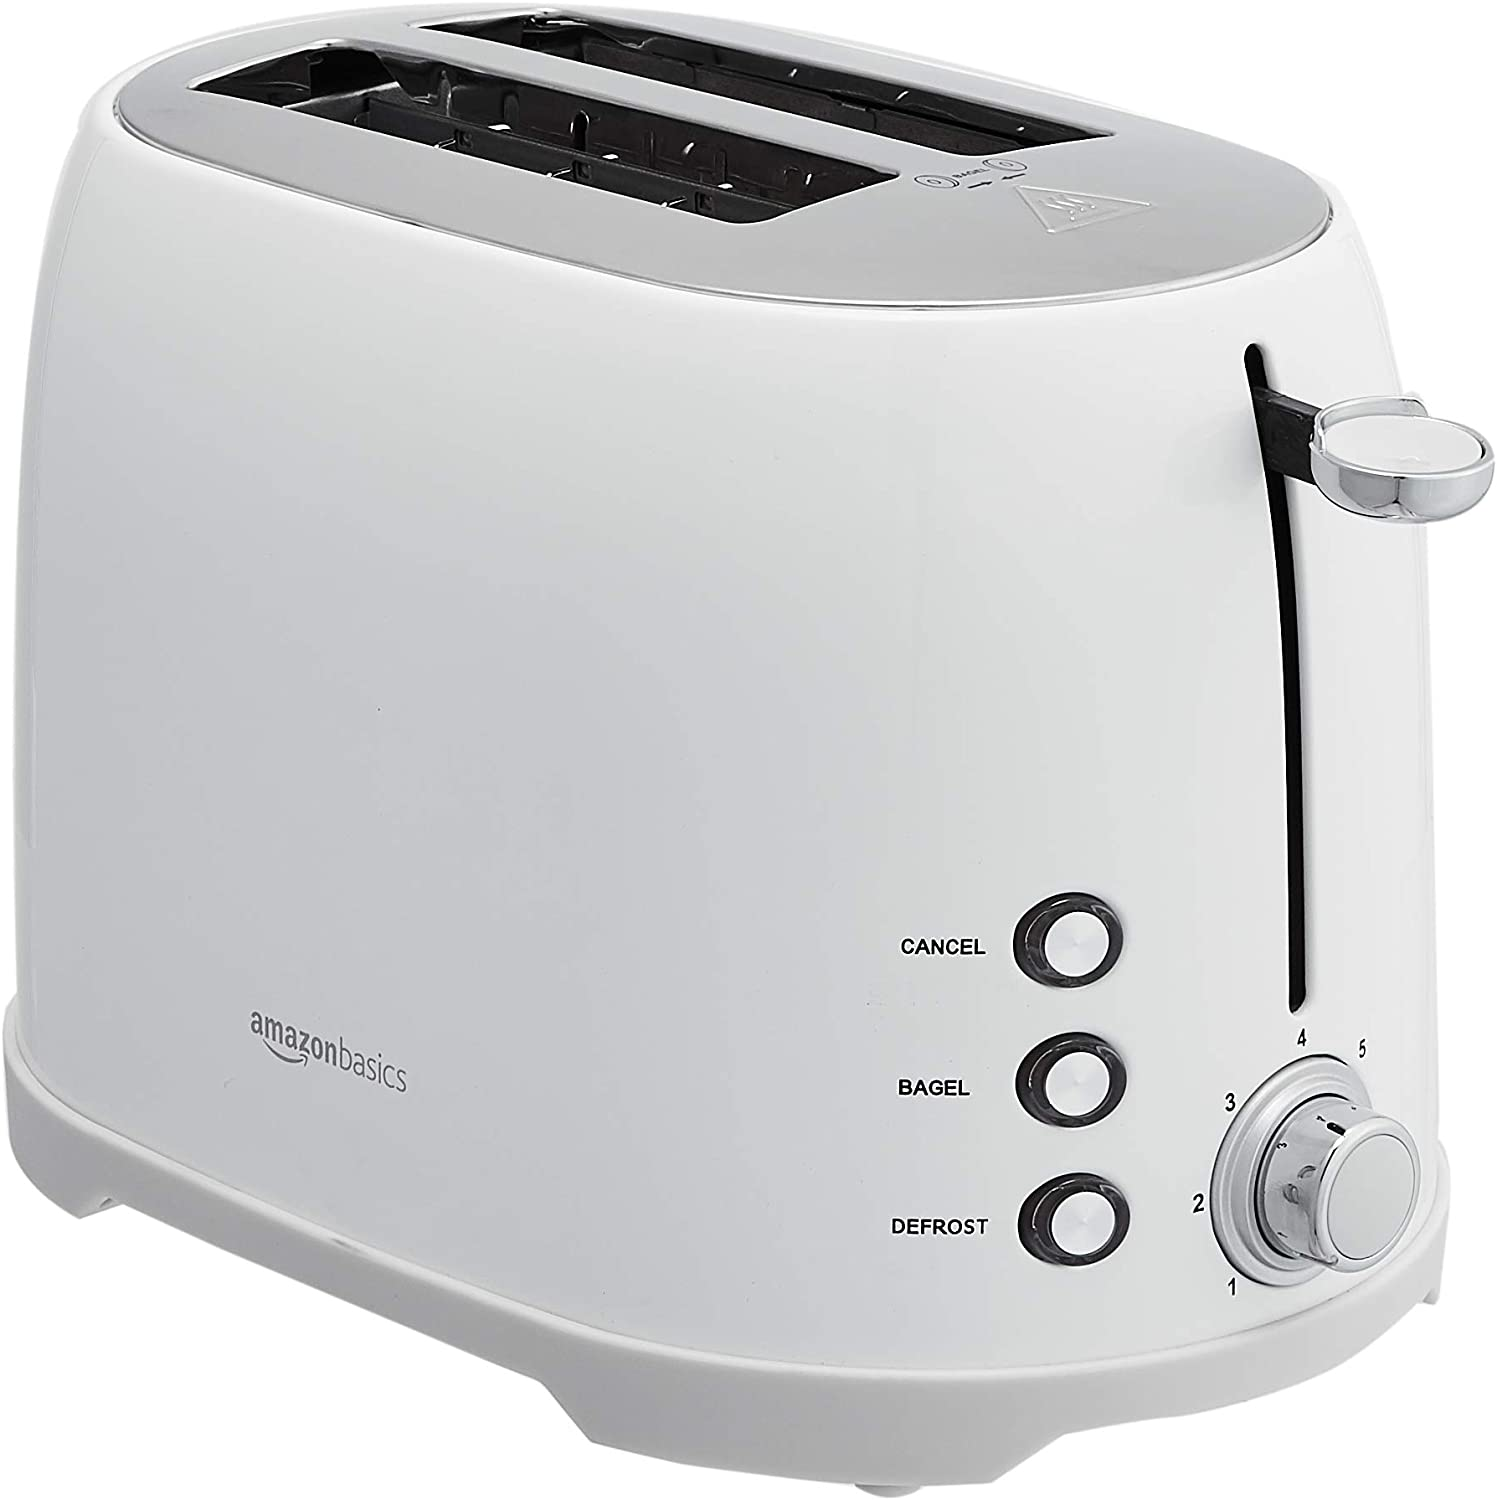 AmazonBasics 2-Slot Toaster, White